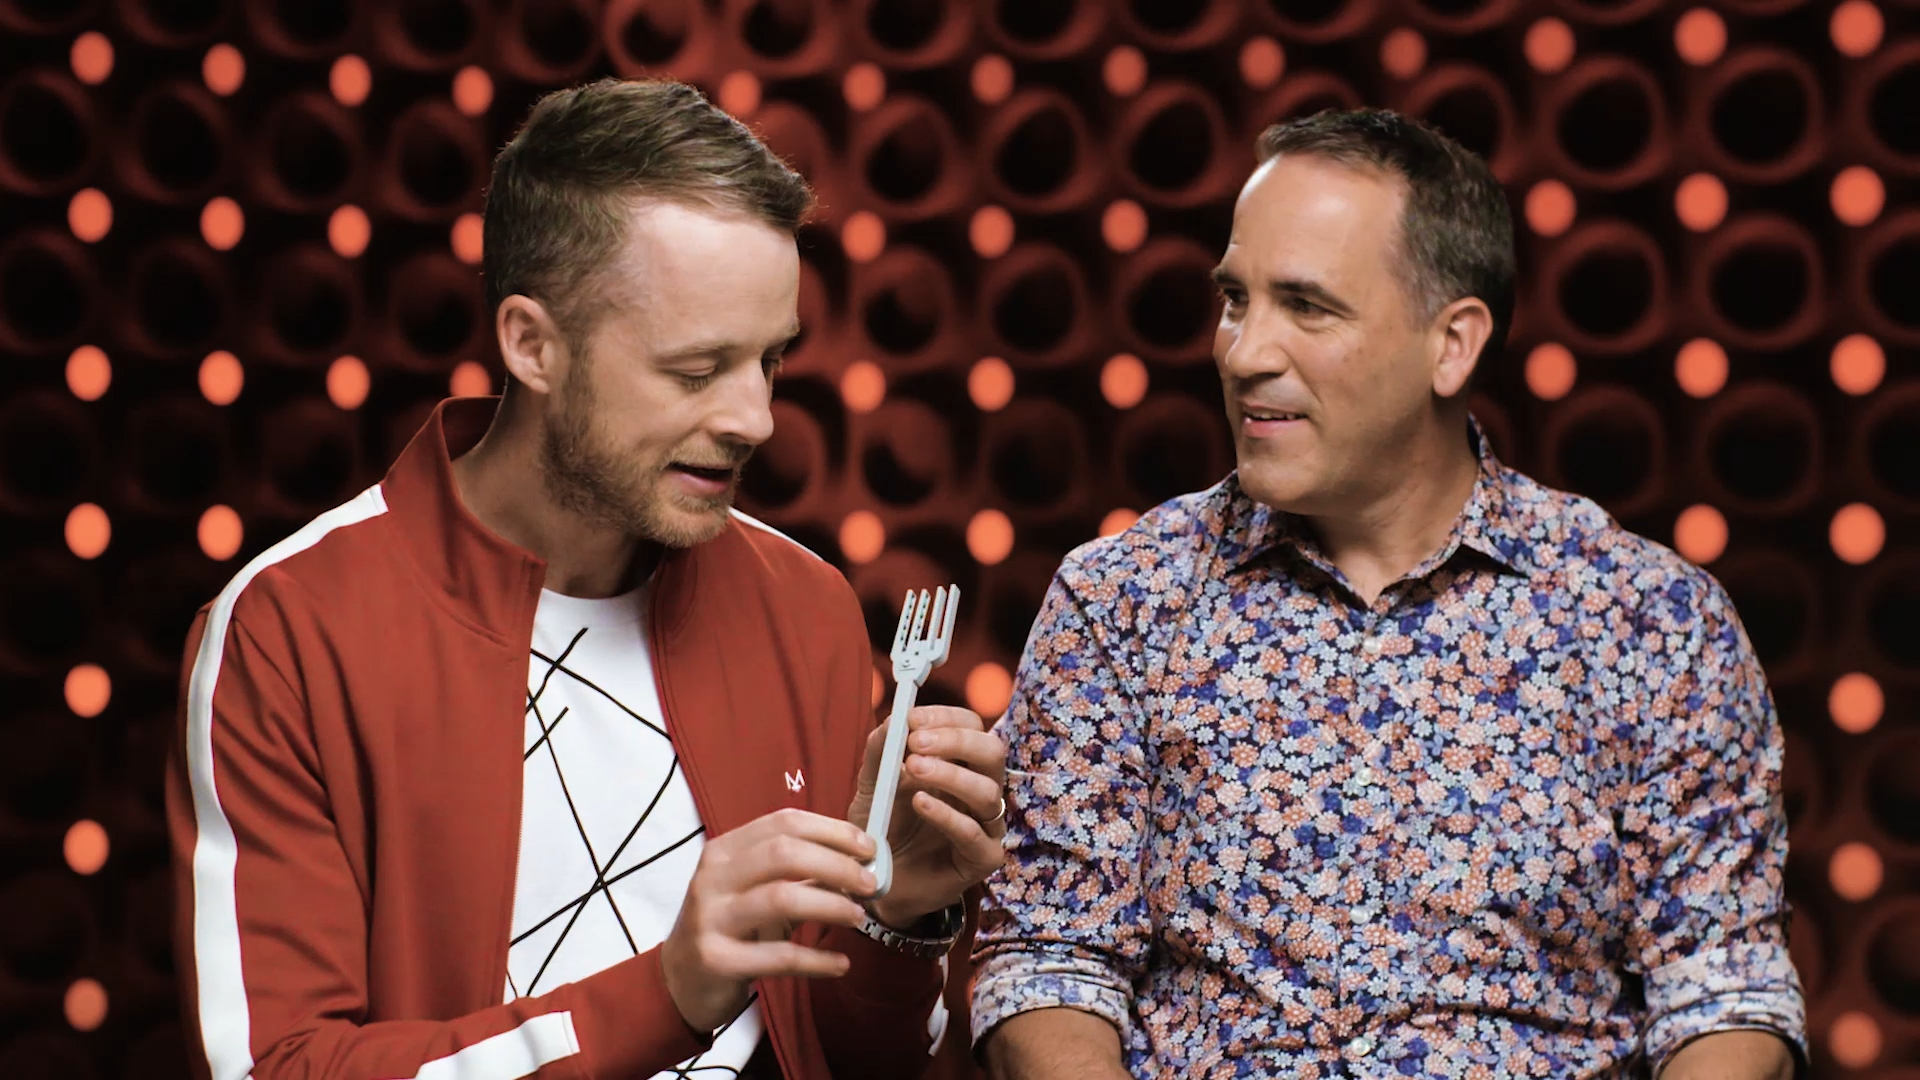 Hamish Blake challenges Brickman to make a LEGO cutlery set